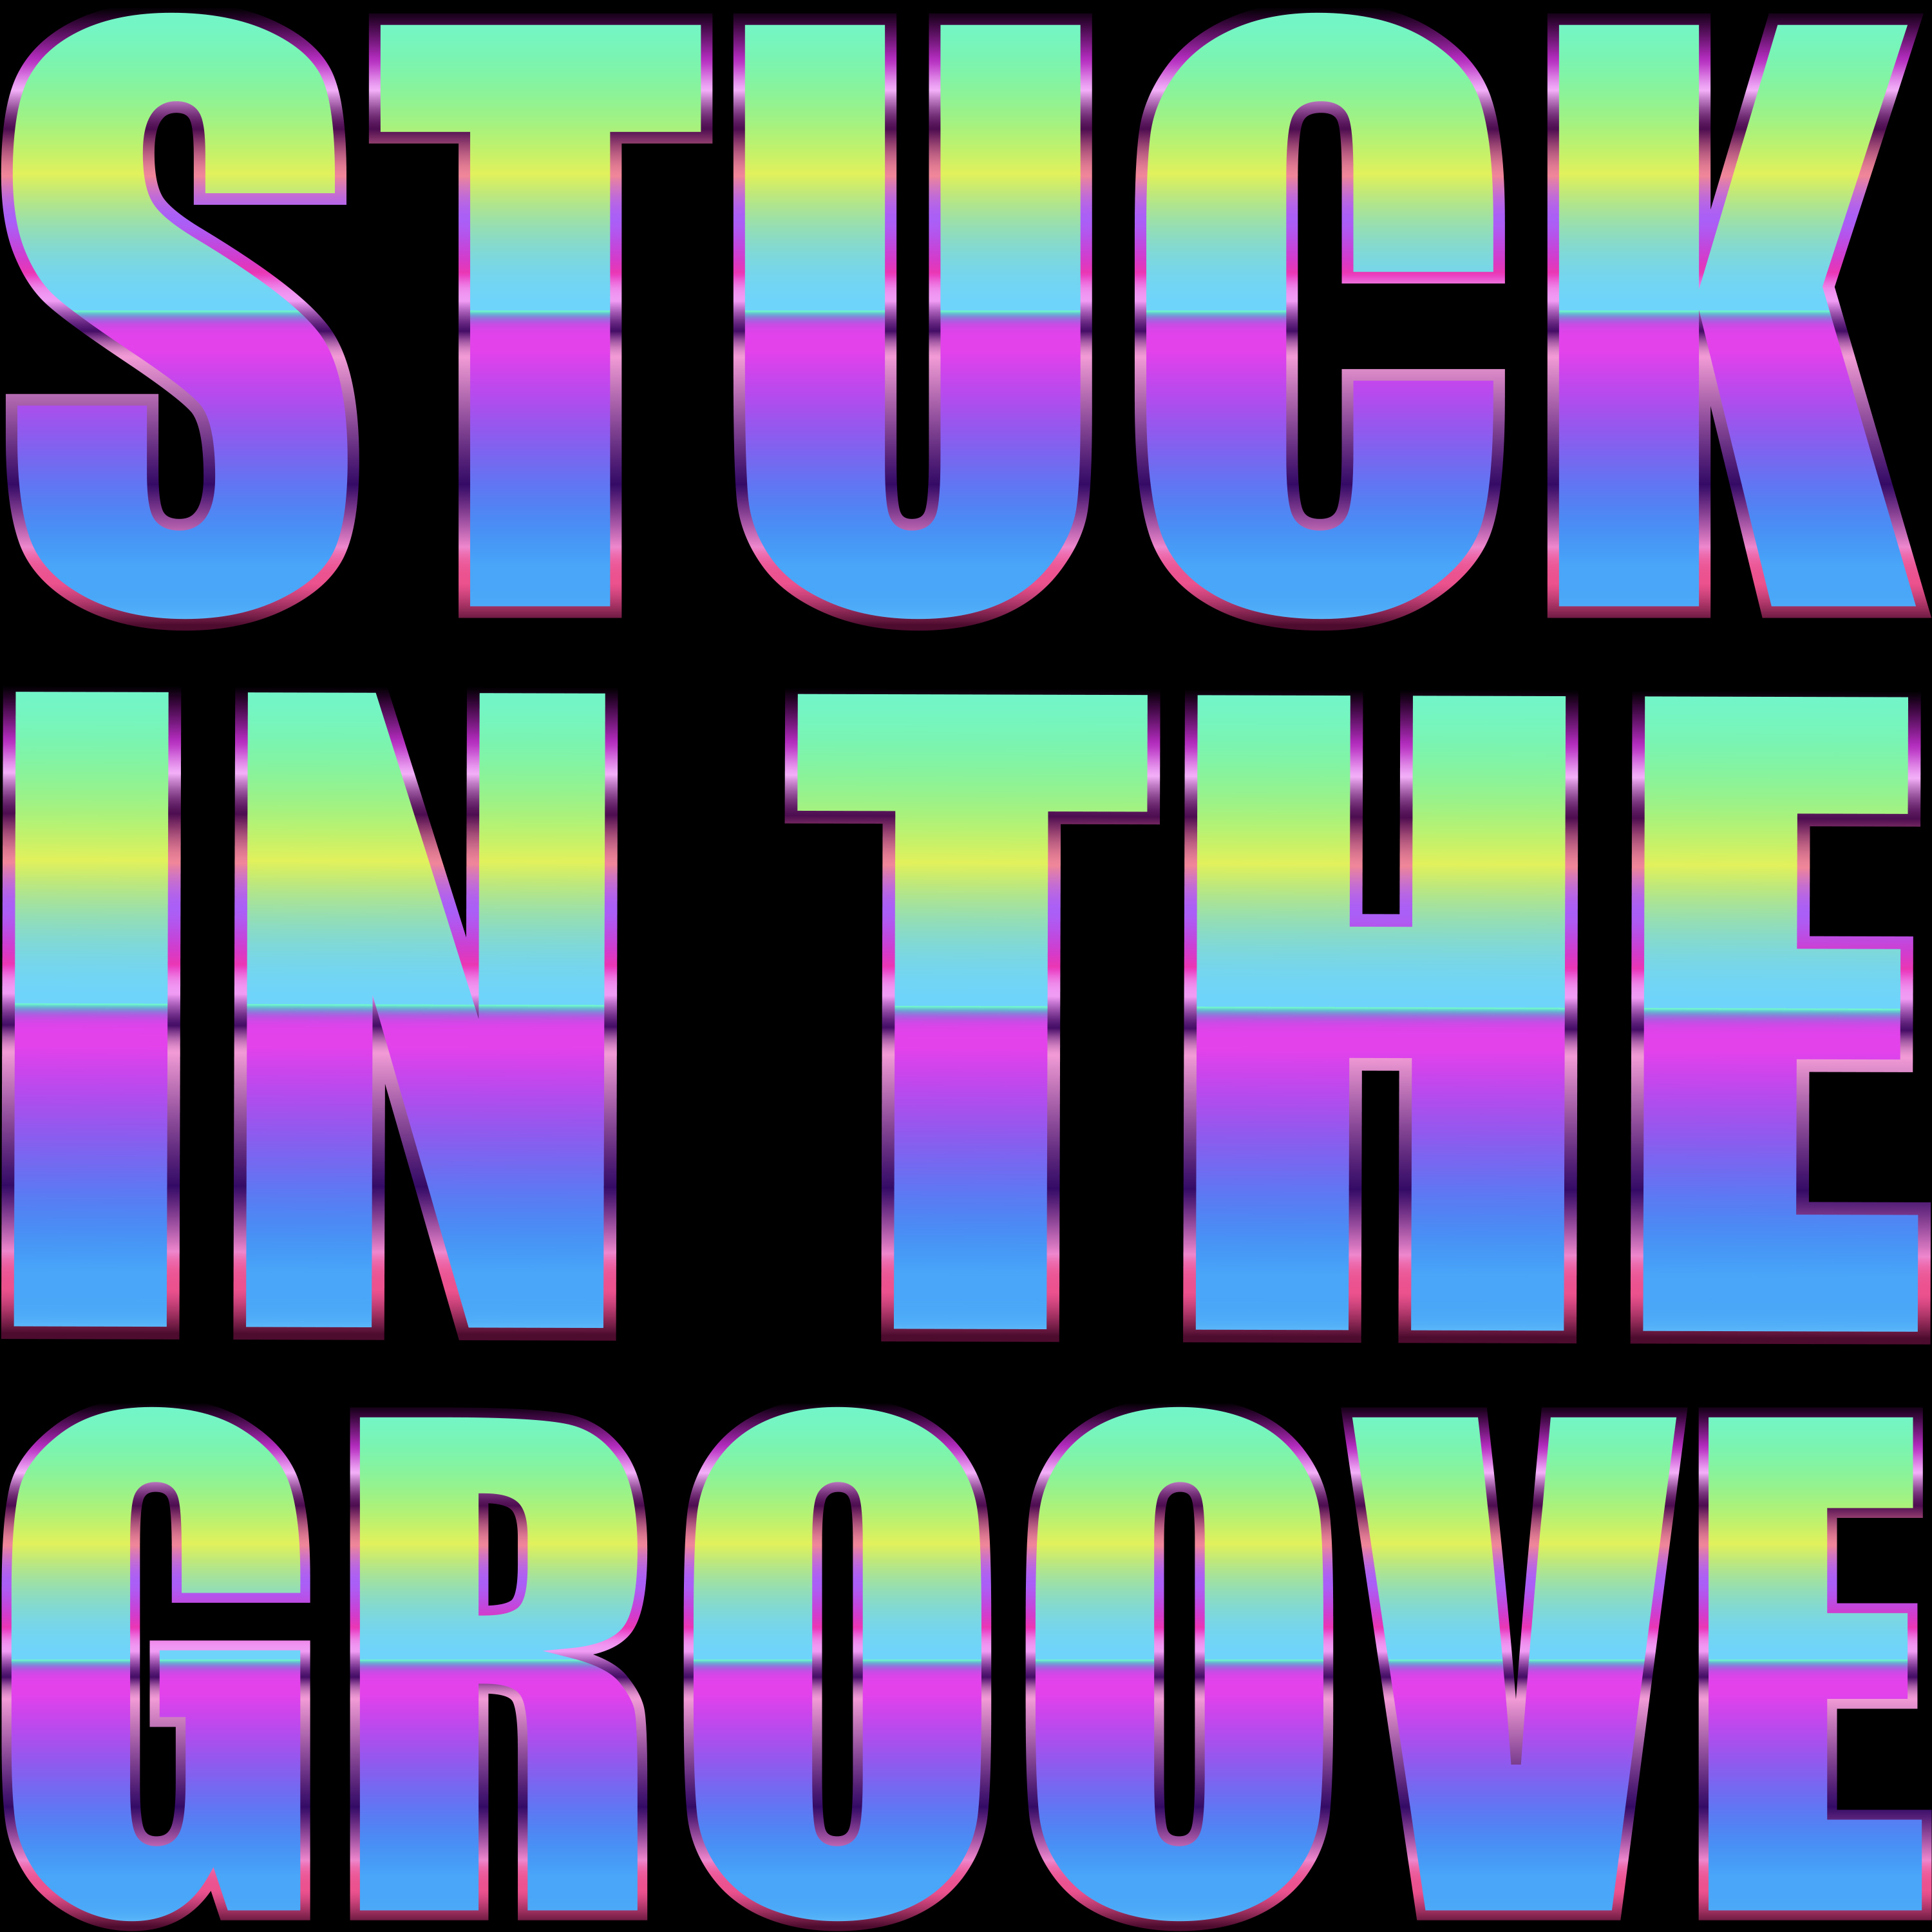 Ladonna Rama Stuck in the groove psychedelic acid logo